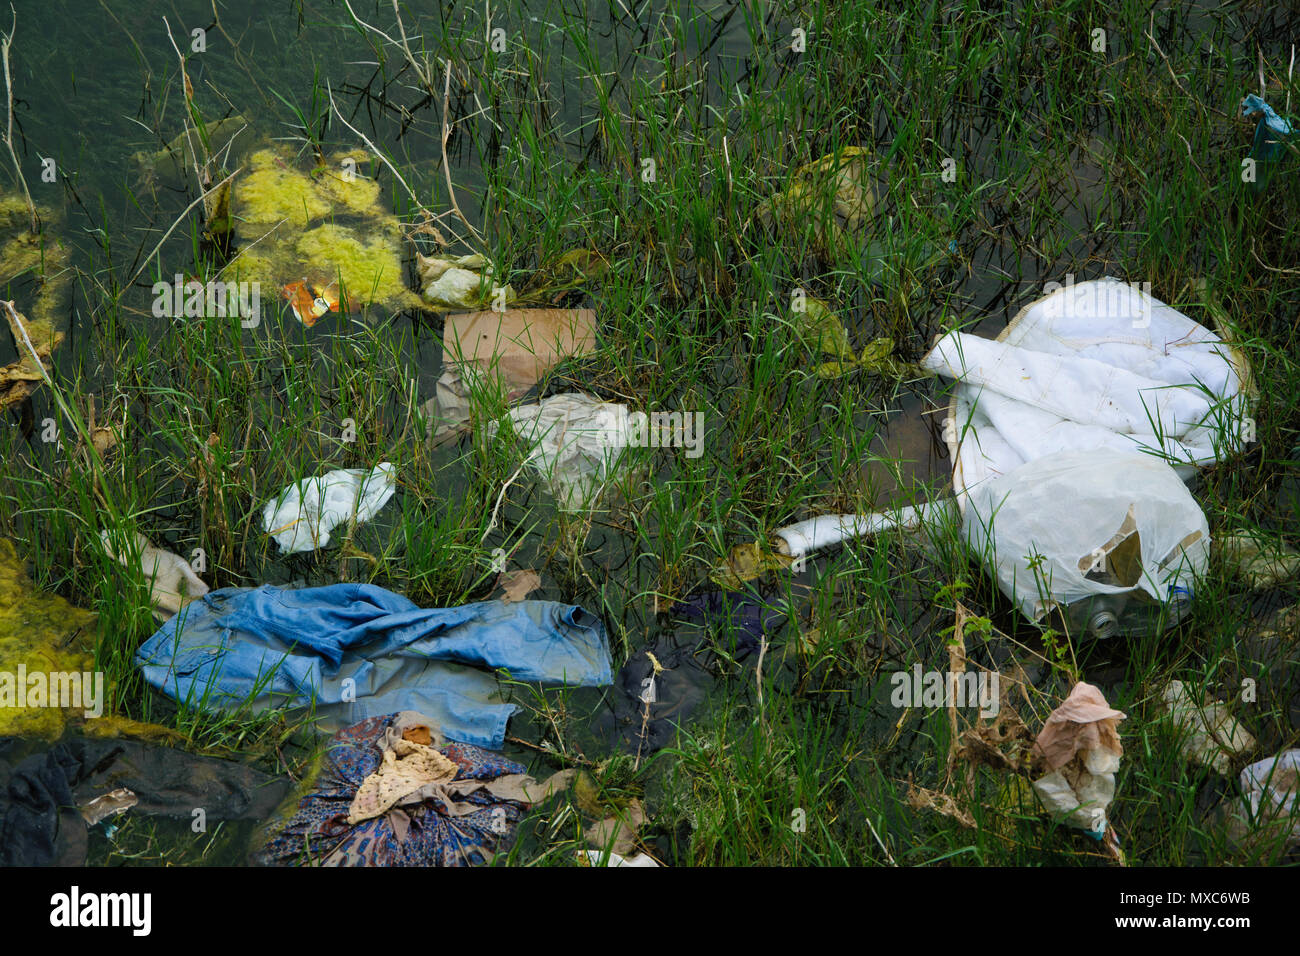 Top view of dirty waters by garbage. Ecological industry concept - Stock Image